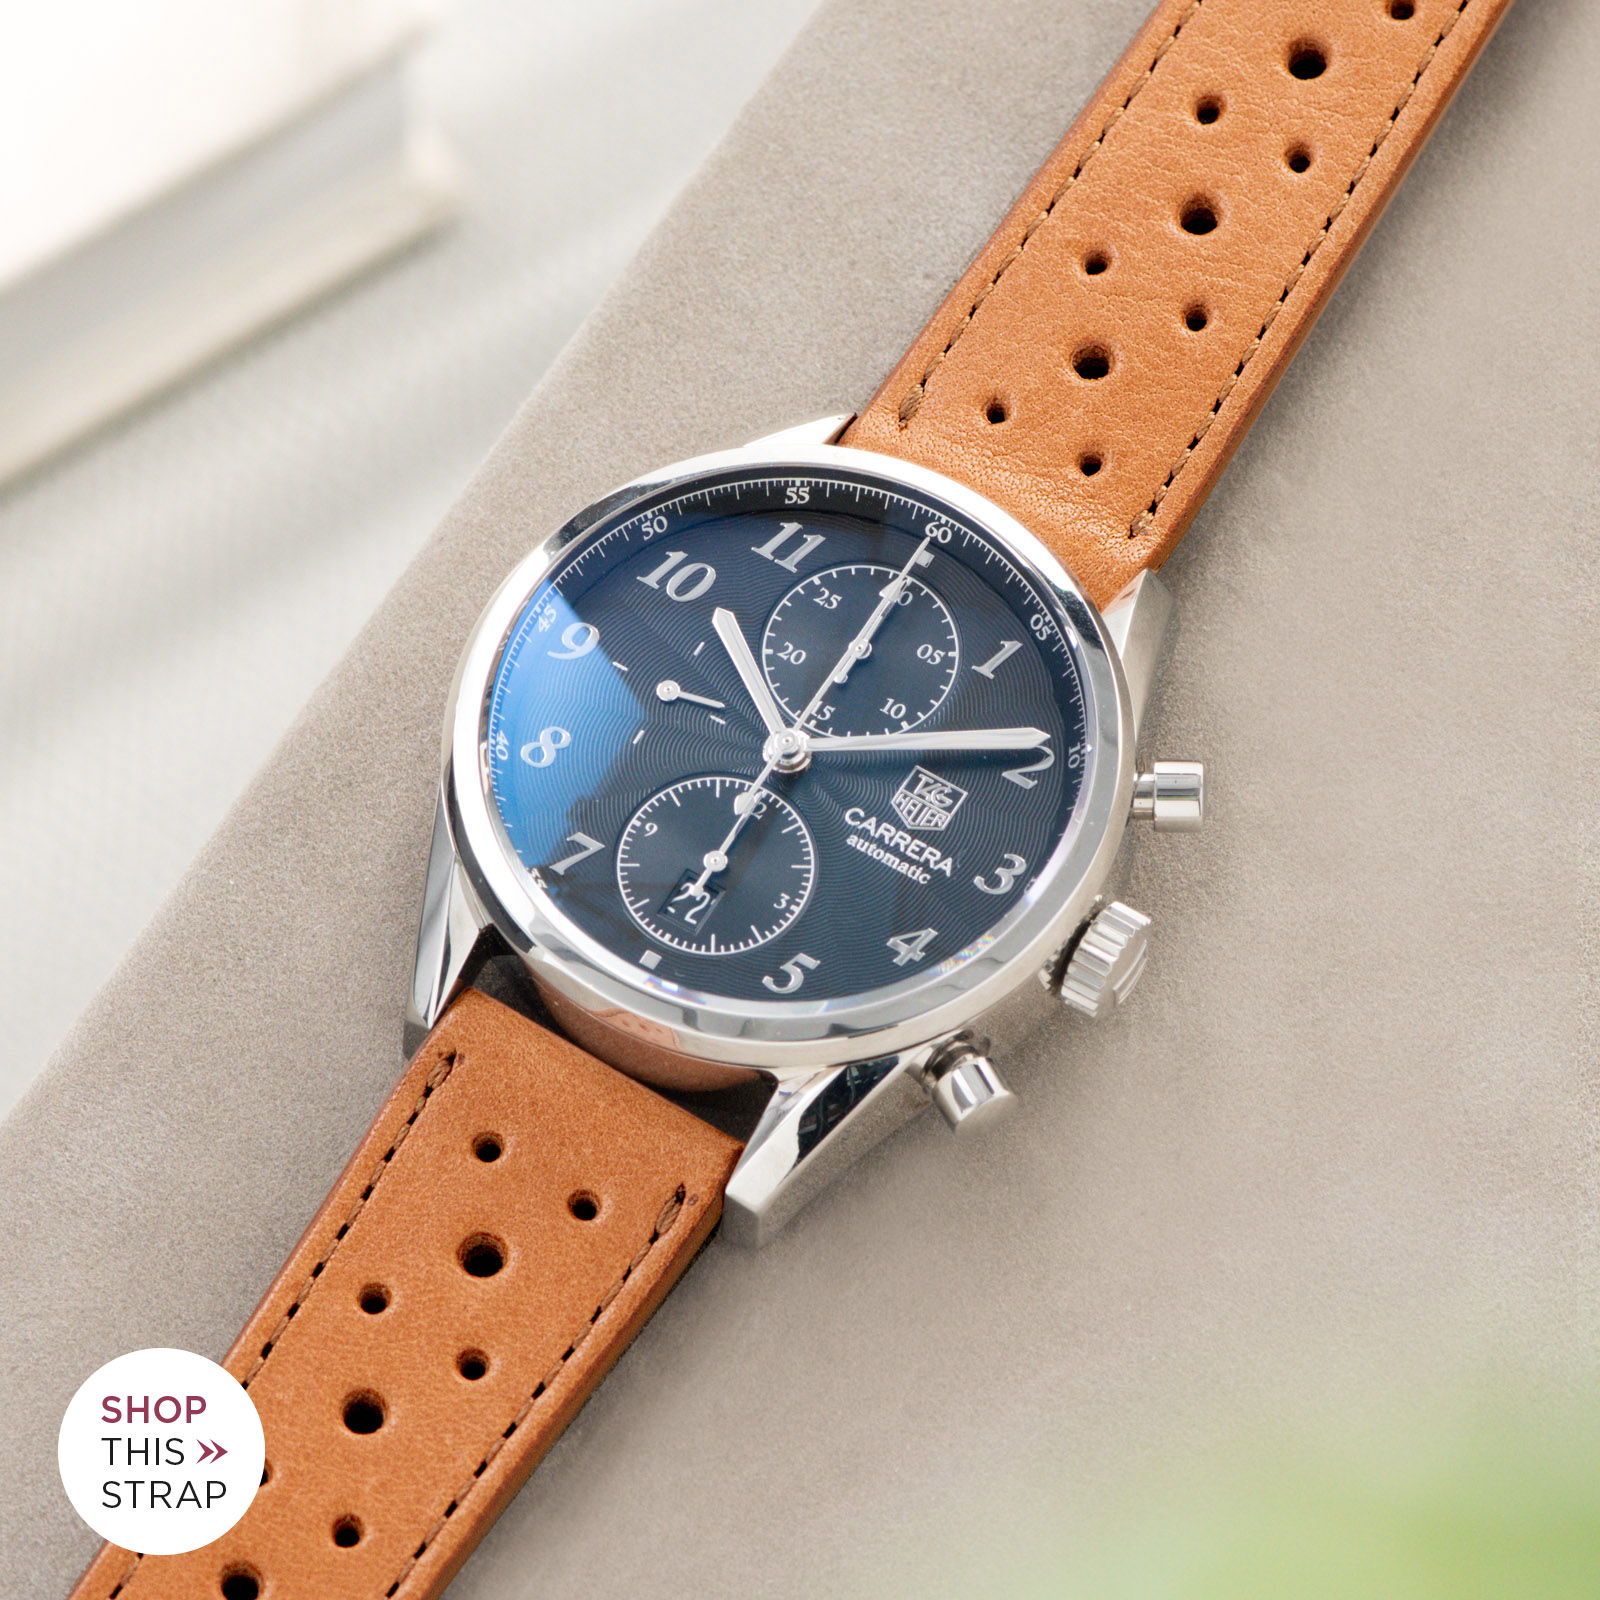 Bulang and Sons_Strap guide_Heuer Carrera Automatic_Racing Caramel Brown Leather Watch Strap